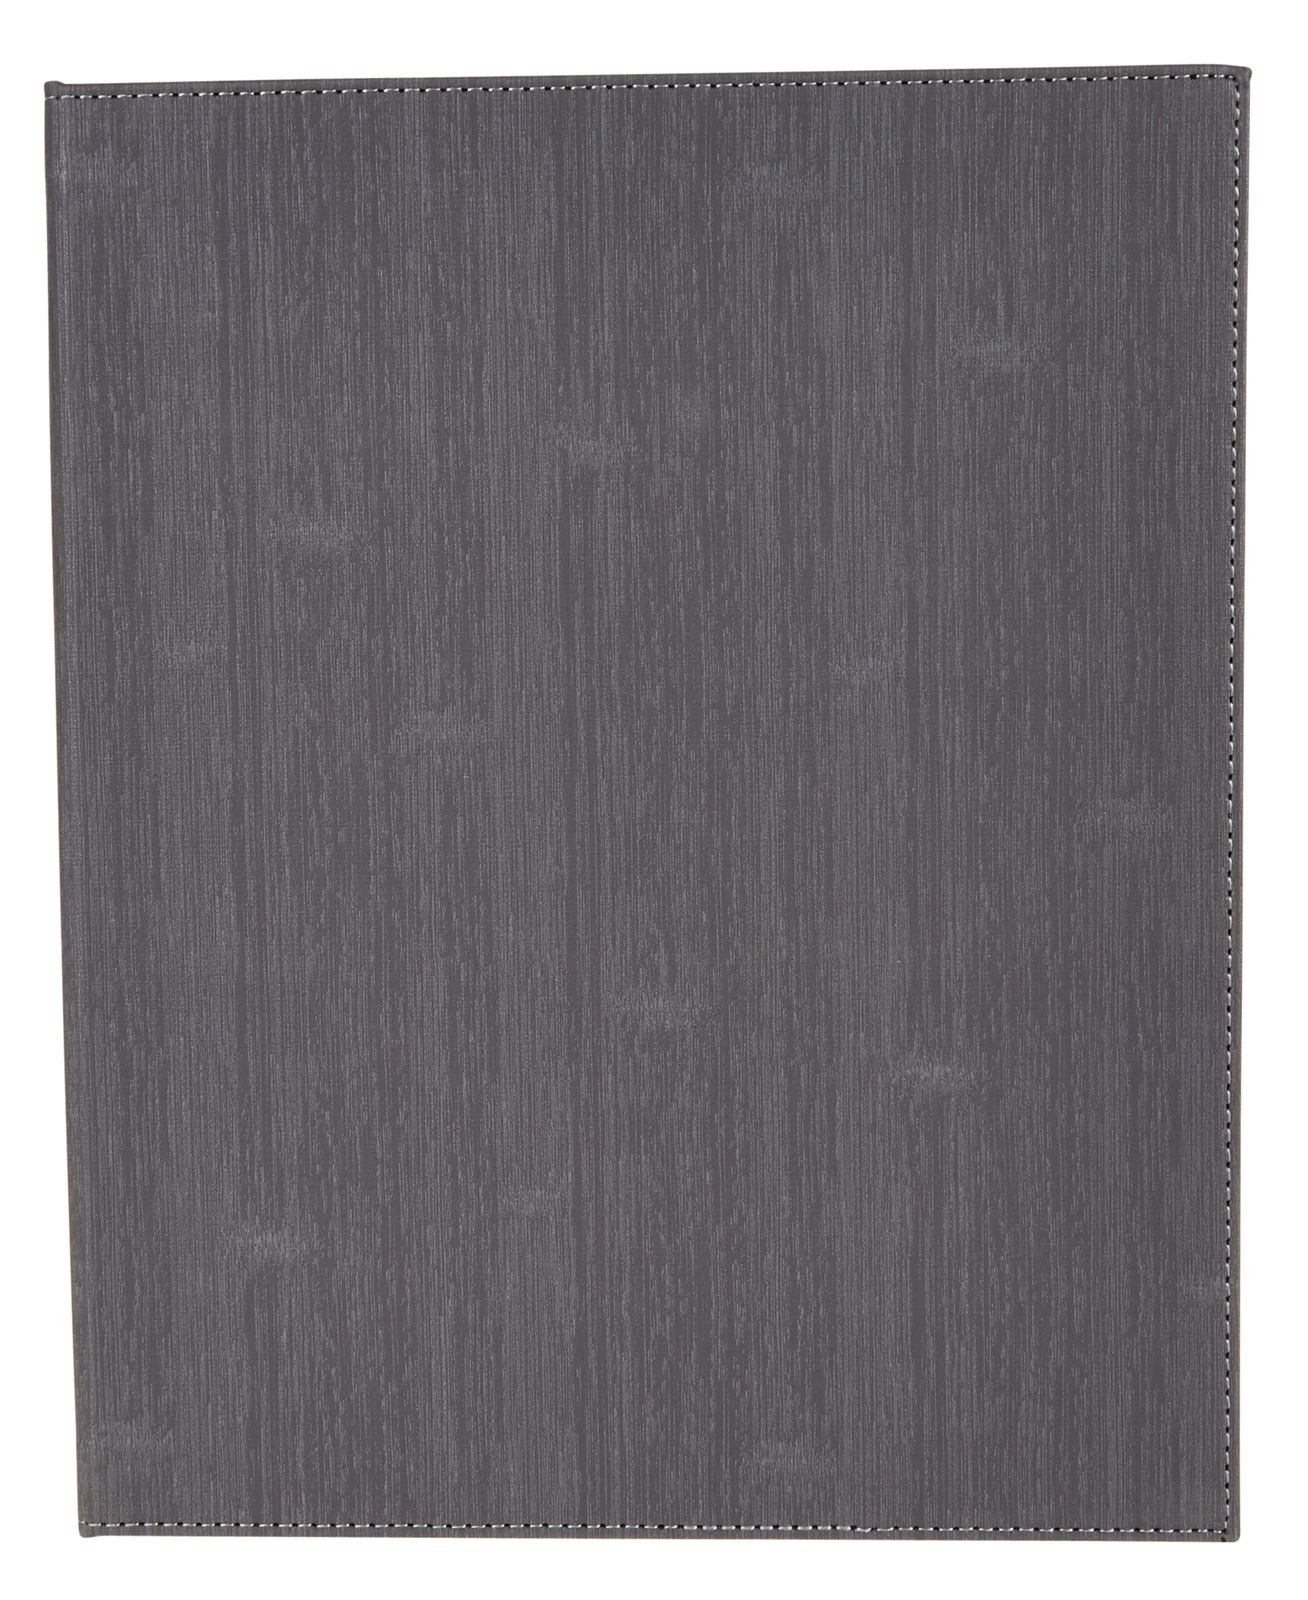 "Winco LMD-814GY 8-1/2"" x 14"" Gray Leatherette Two Panel Menu Cover"